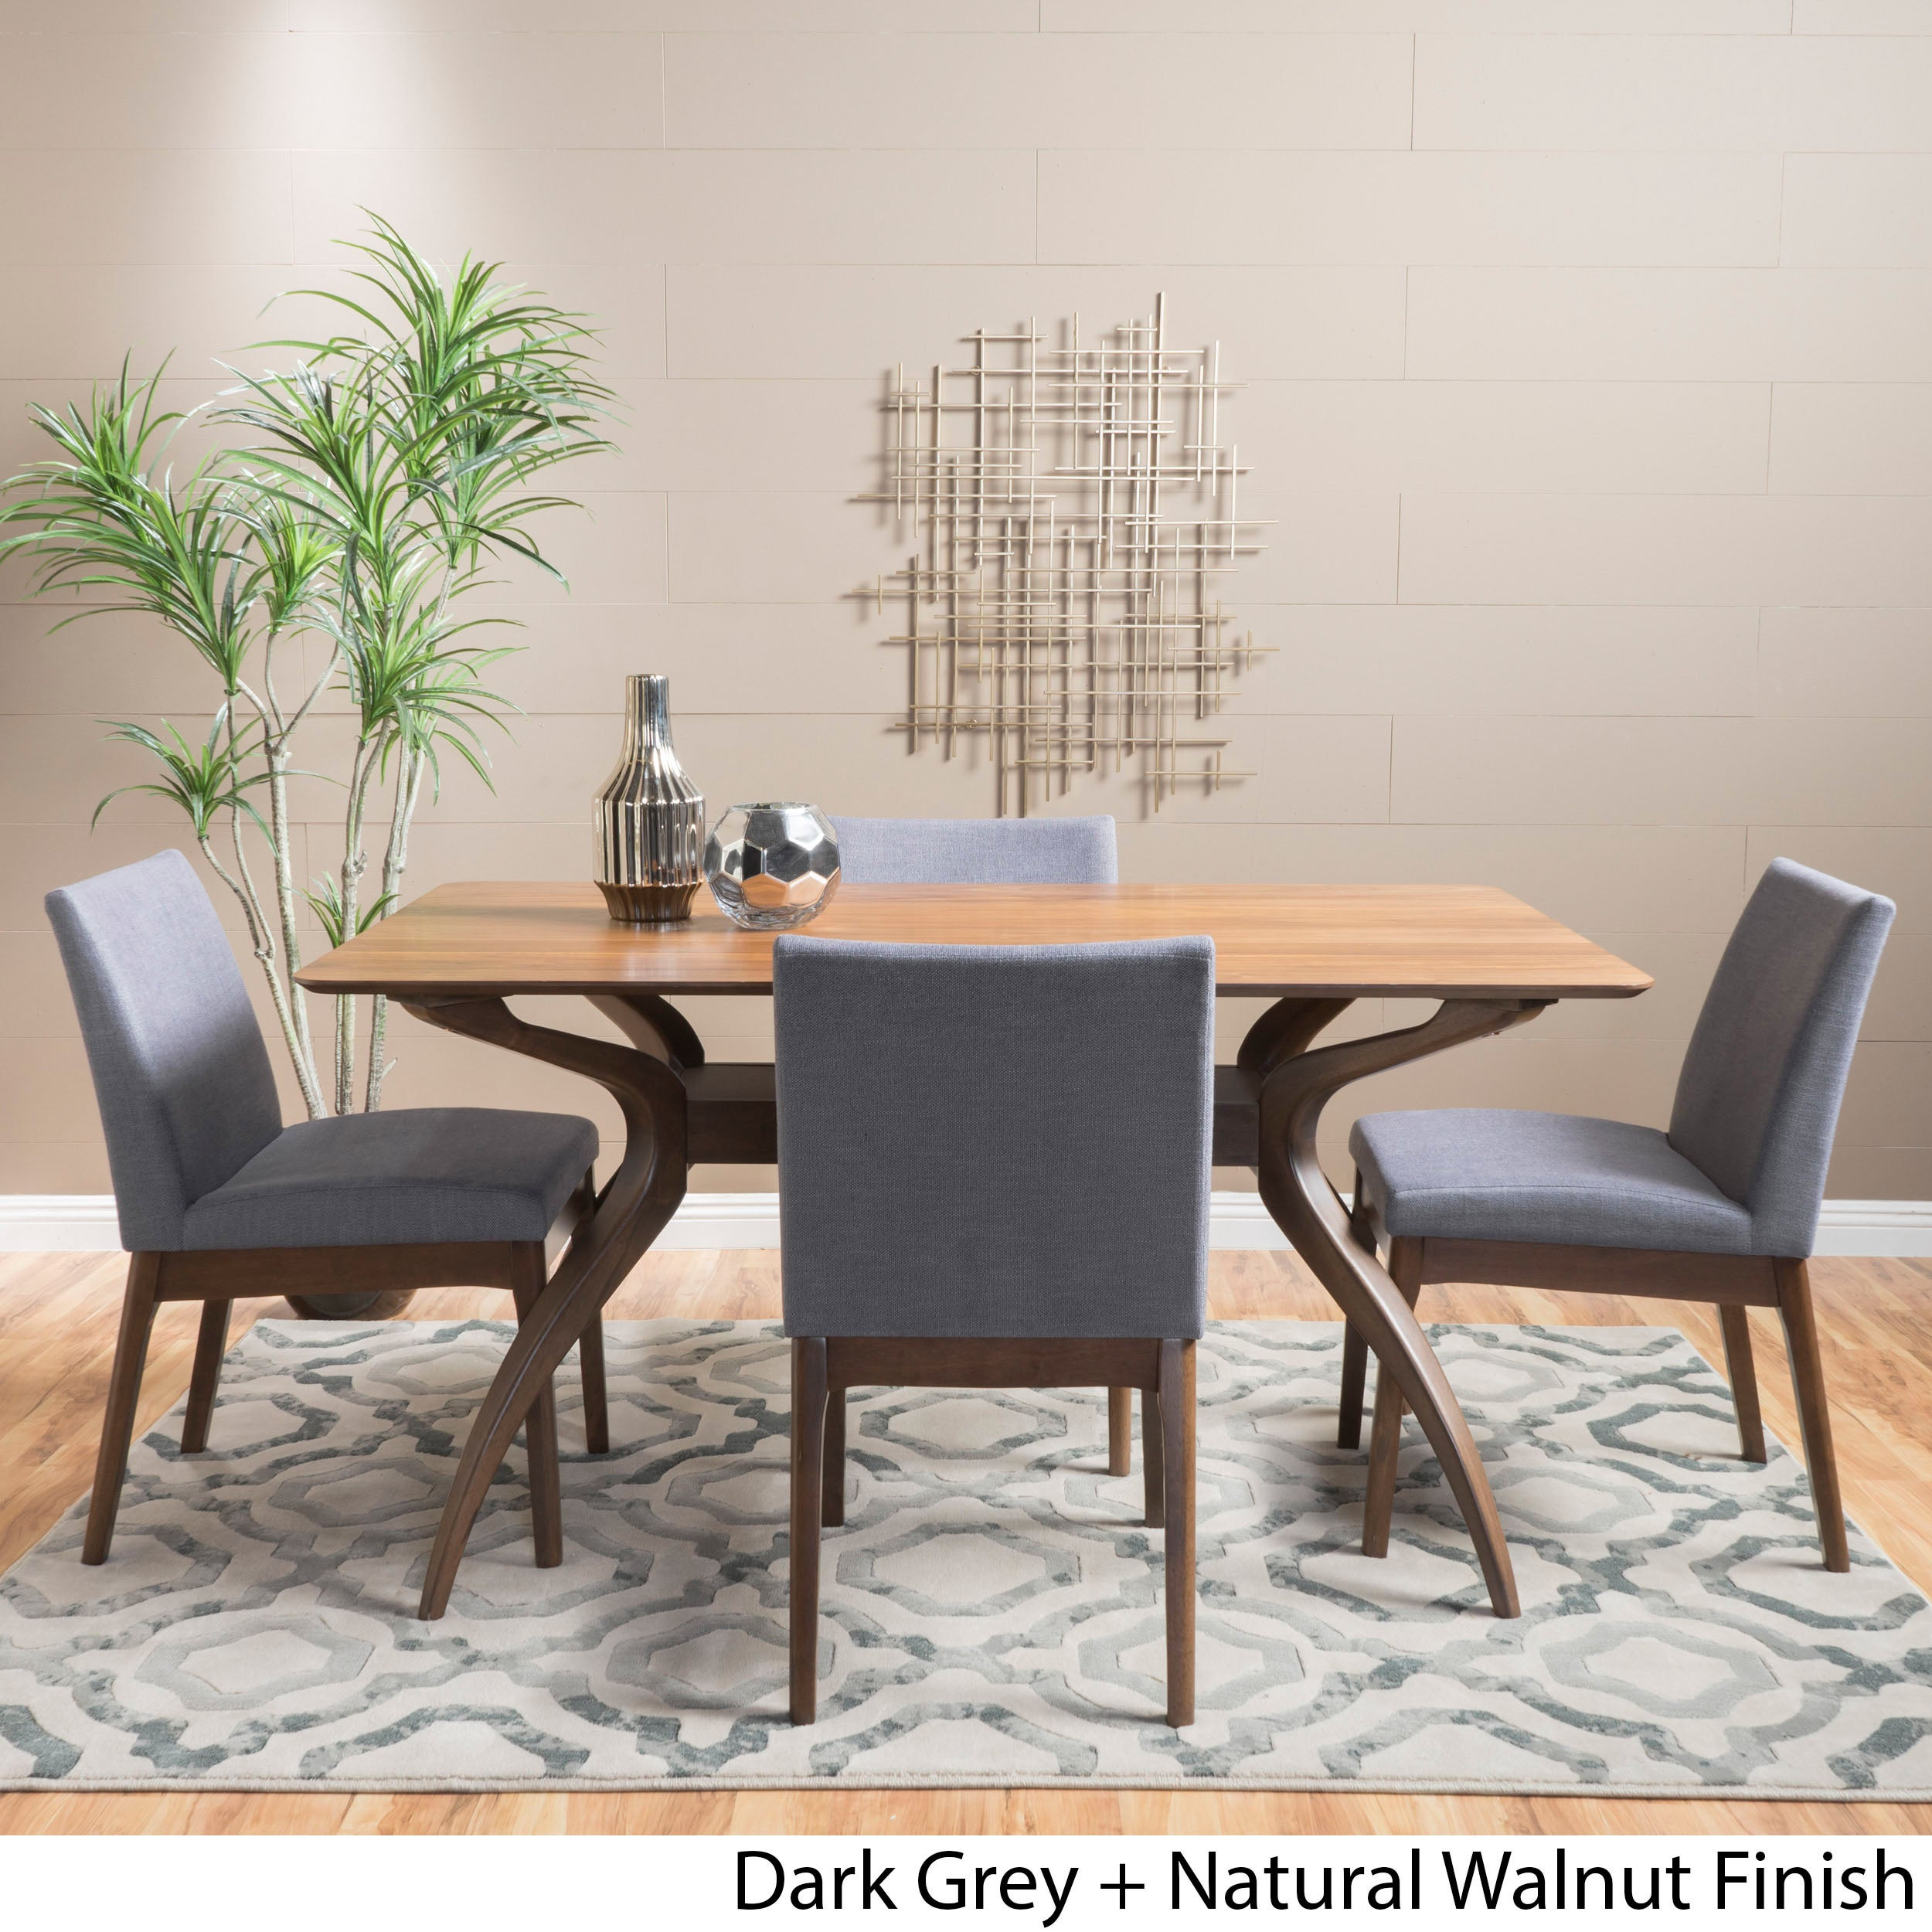 Shop kwame mid century 5 piece rectangle dining set by christopher shop kwame mid century 5 piece rectangle dining set by christopher knight home on sale free shipping today overstock 12898486 watchthetrailerfo